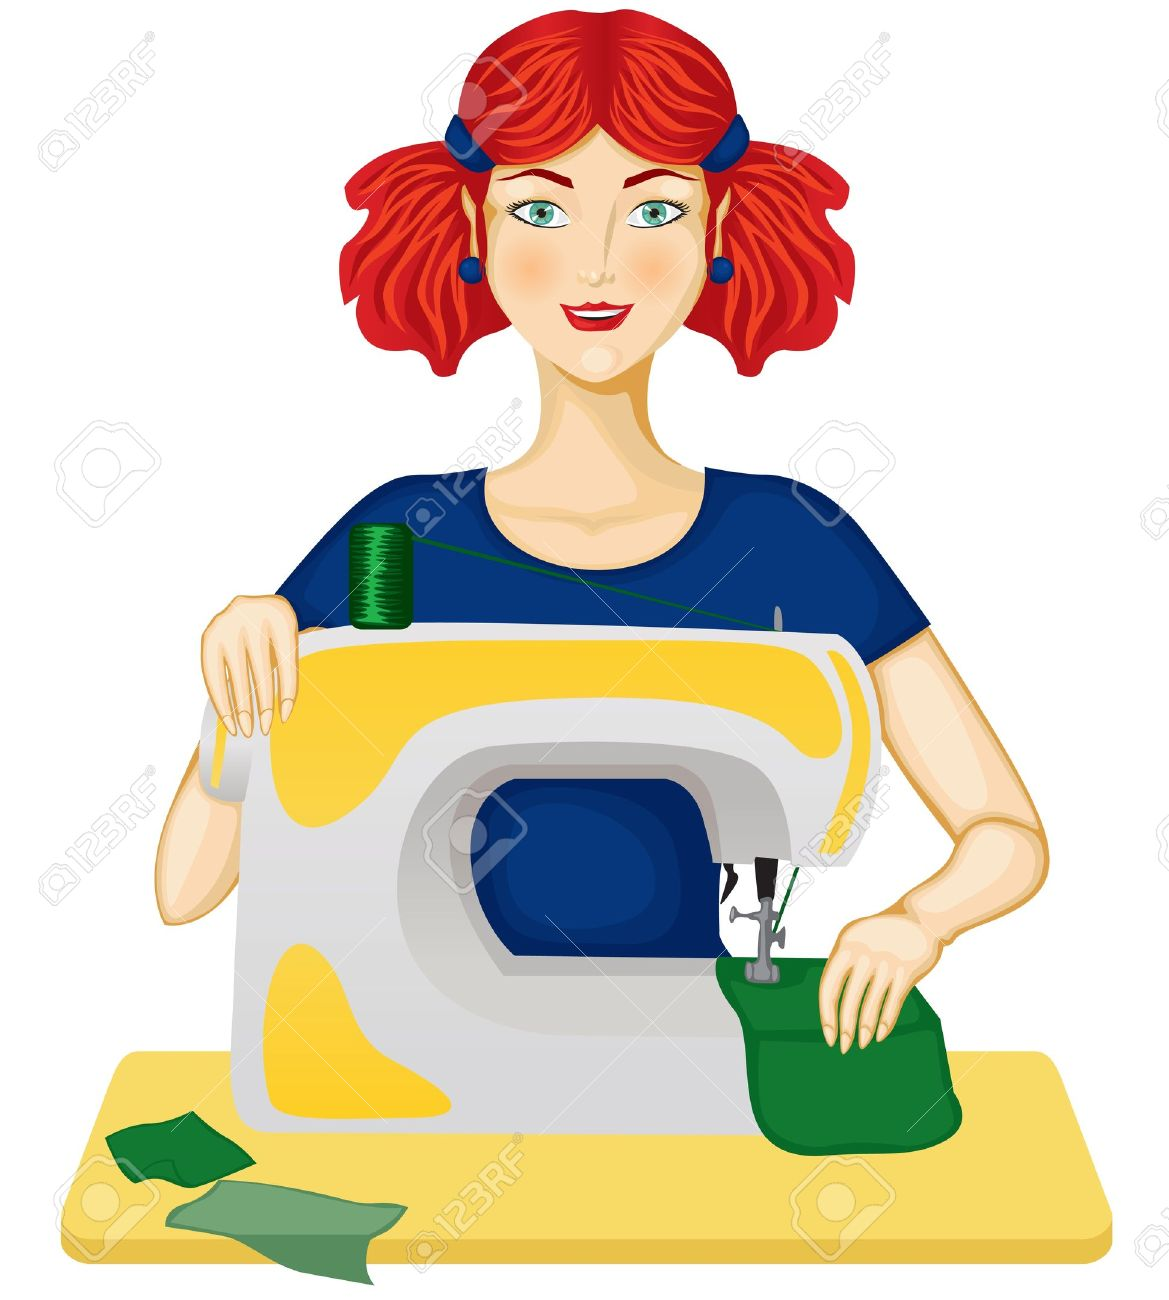 The Woman Sewing On The Sewing Machine Royalty Free Cliparts.